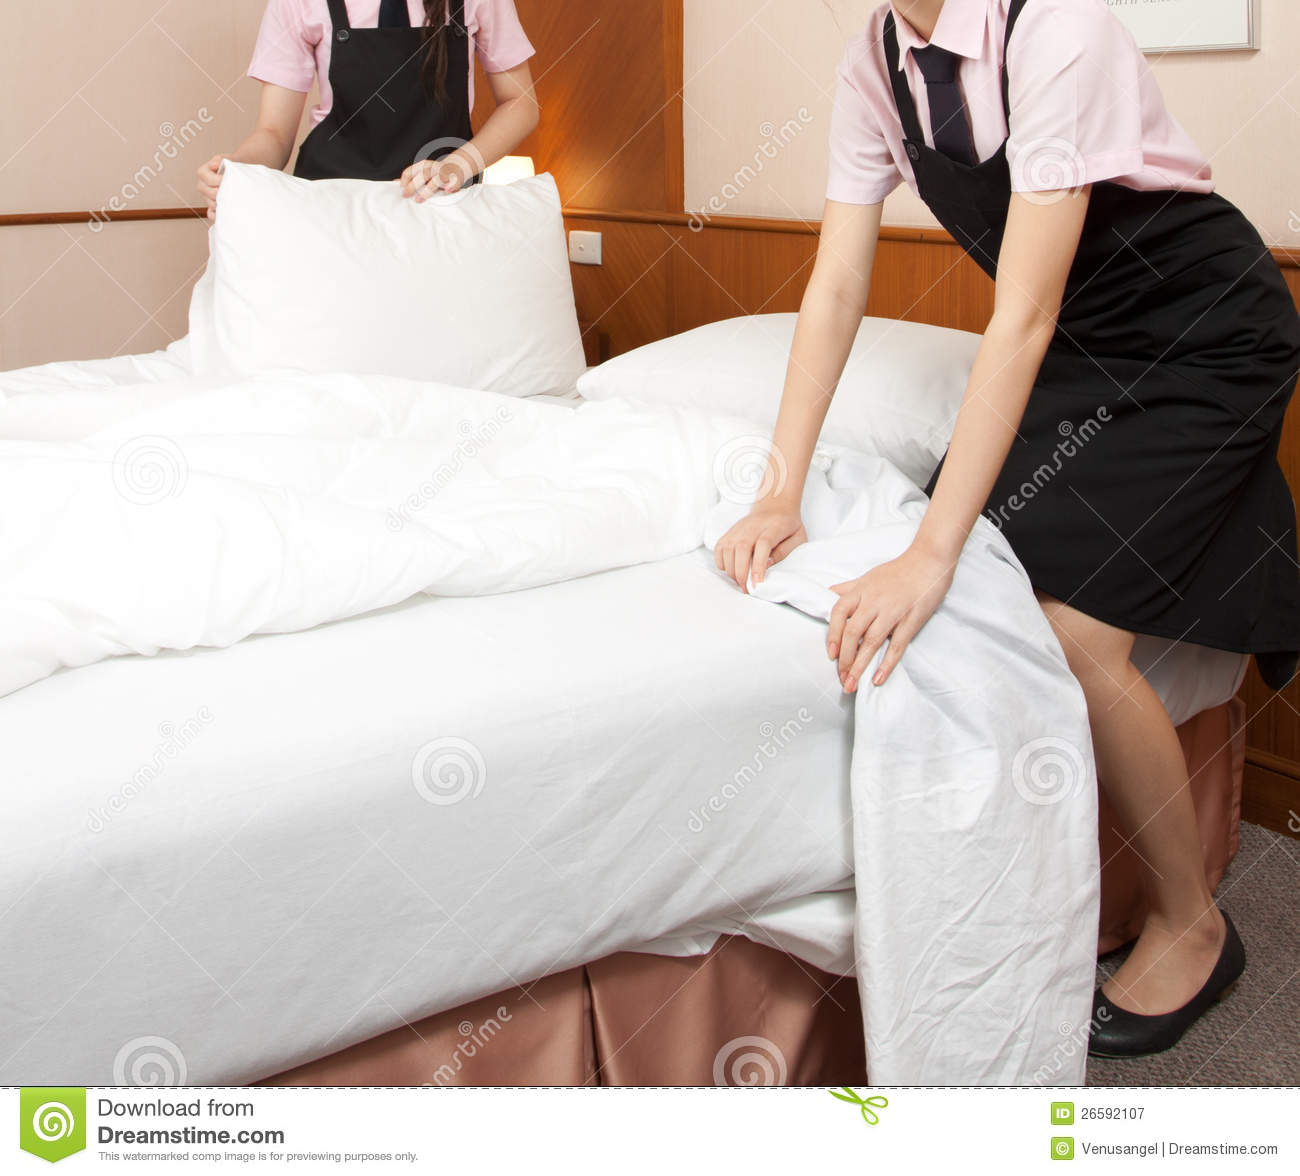 Women Maid Making Bed In Hotel Room Stock Image Image